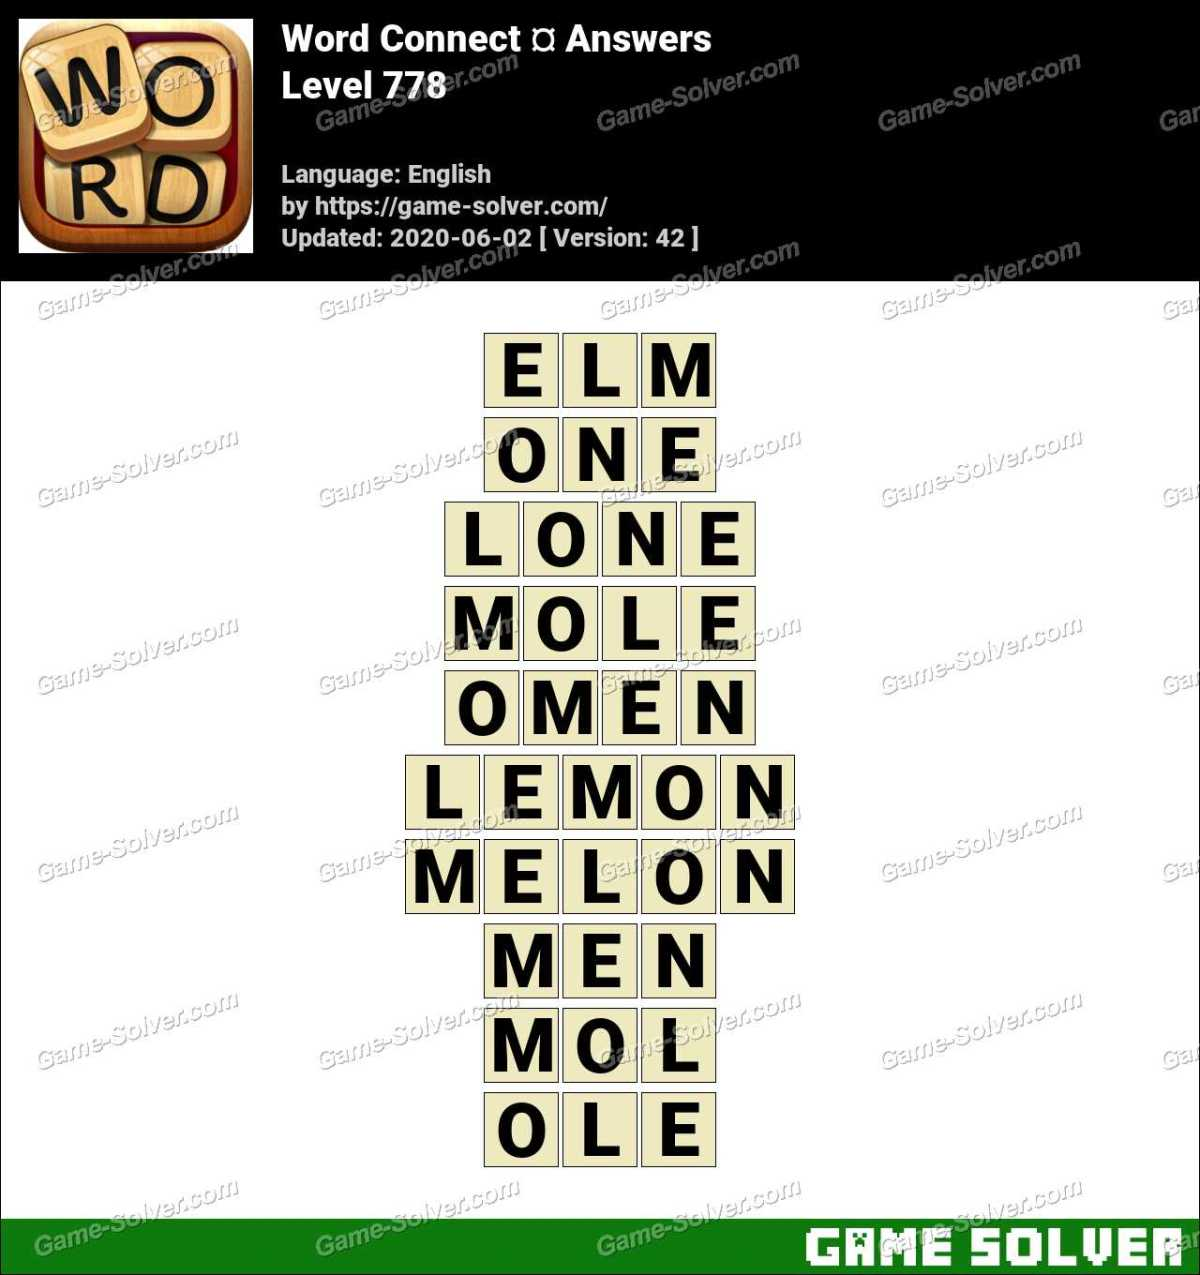 Word Connect Level 778 Answers